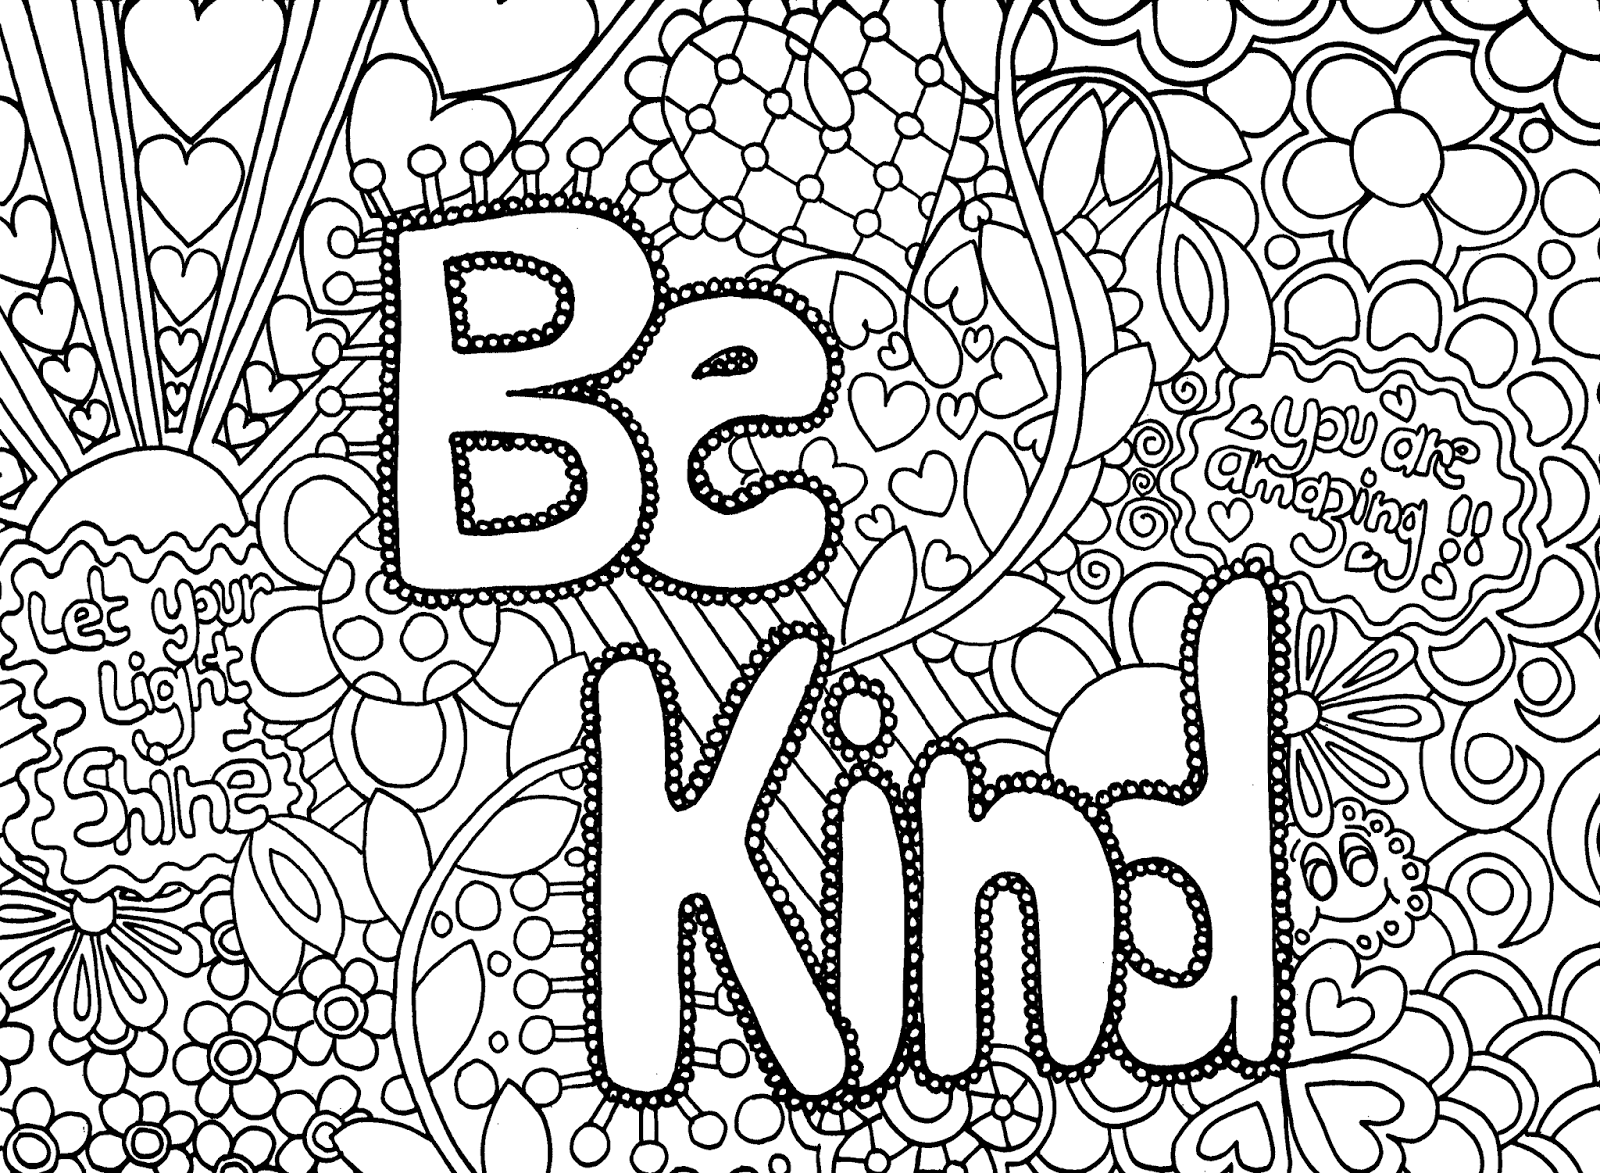 Free coloring pages for adults printable hard to color printable